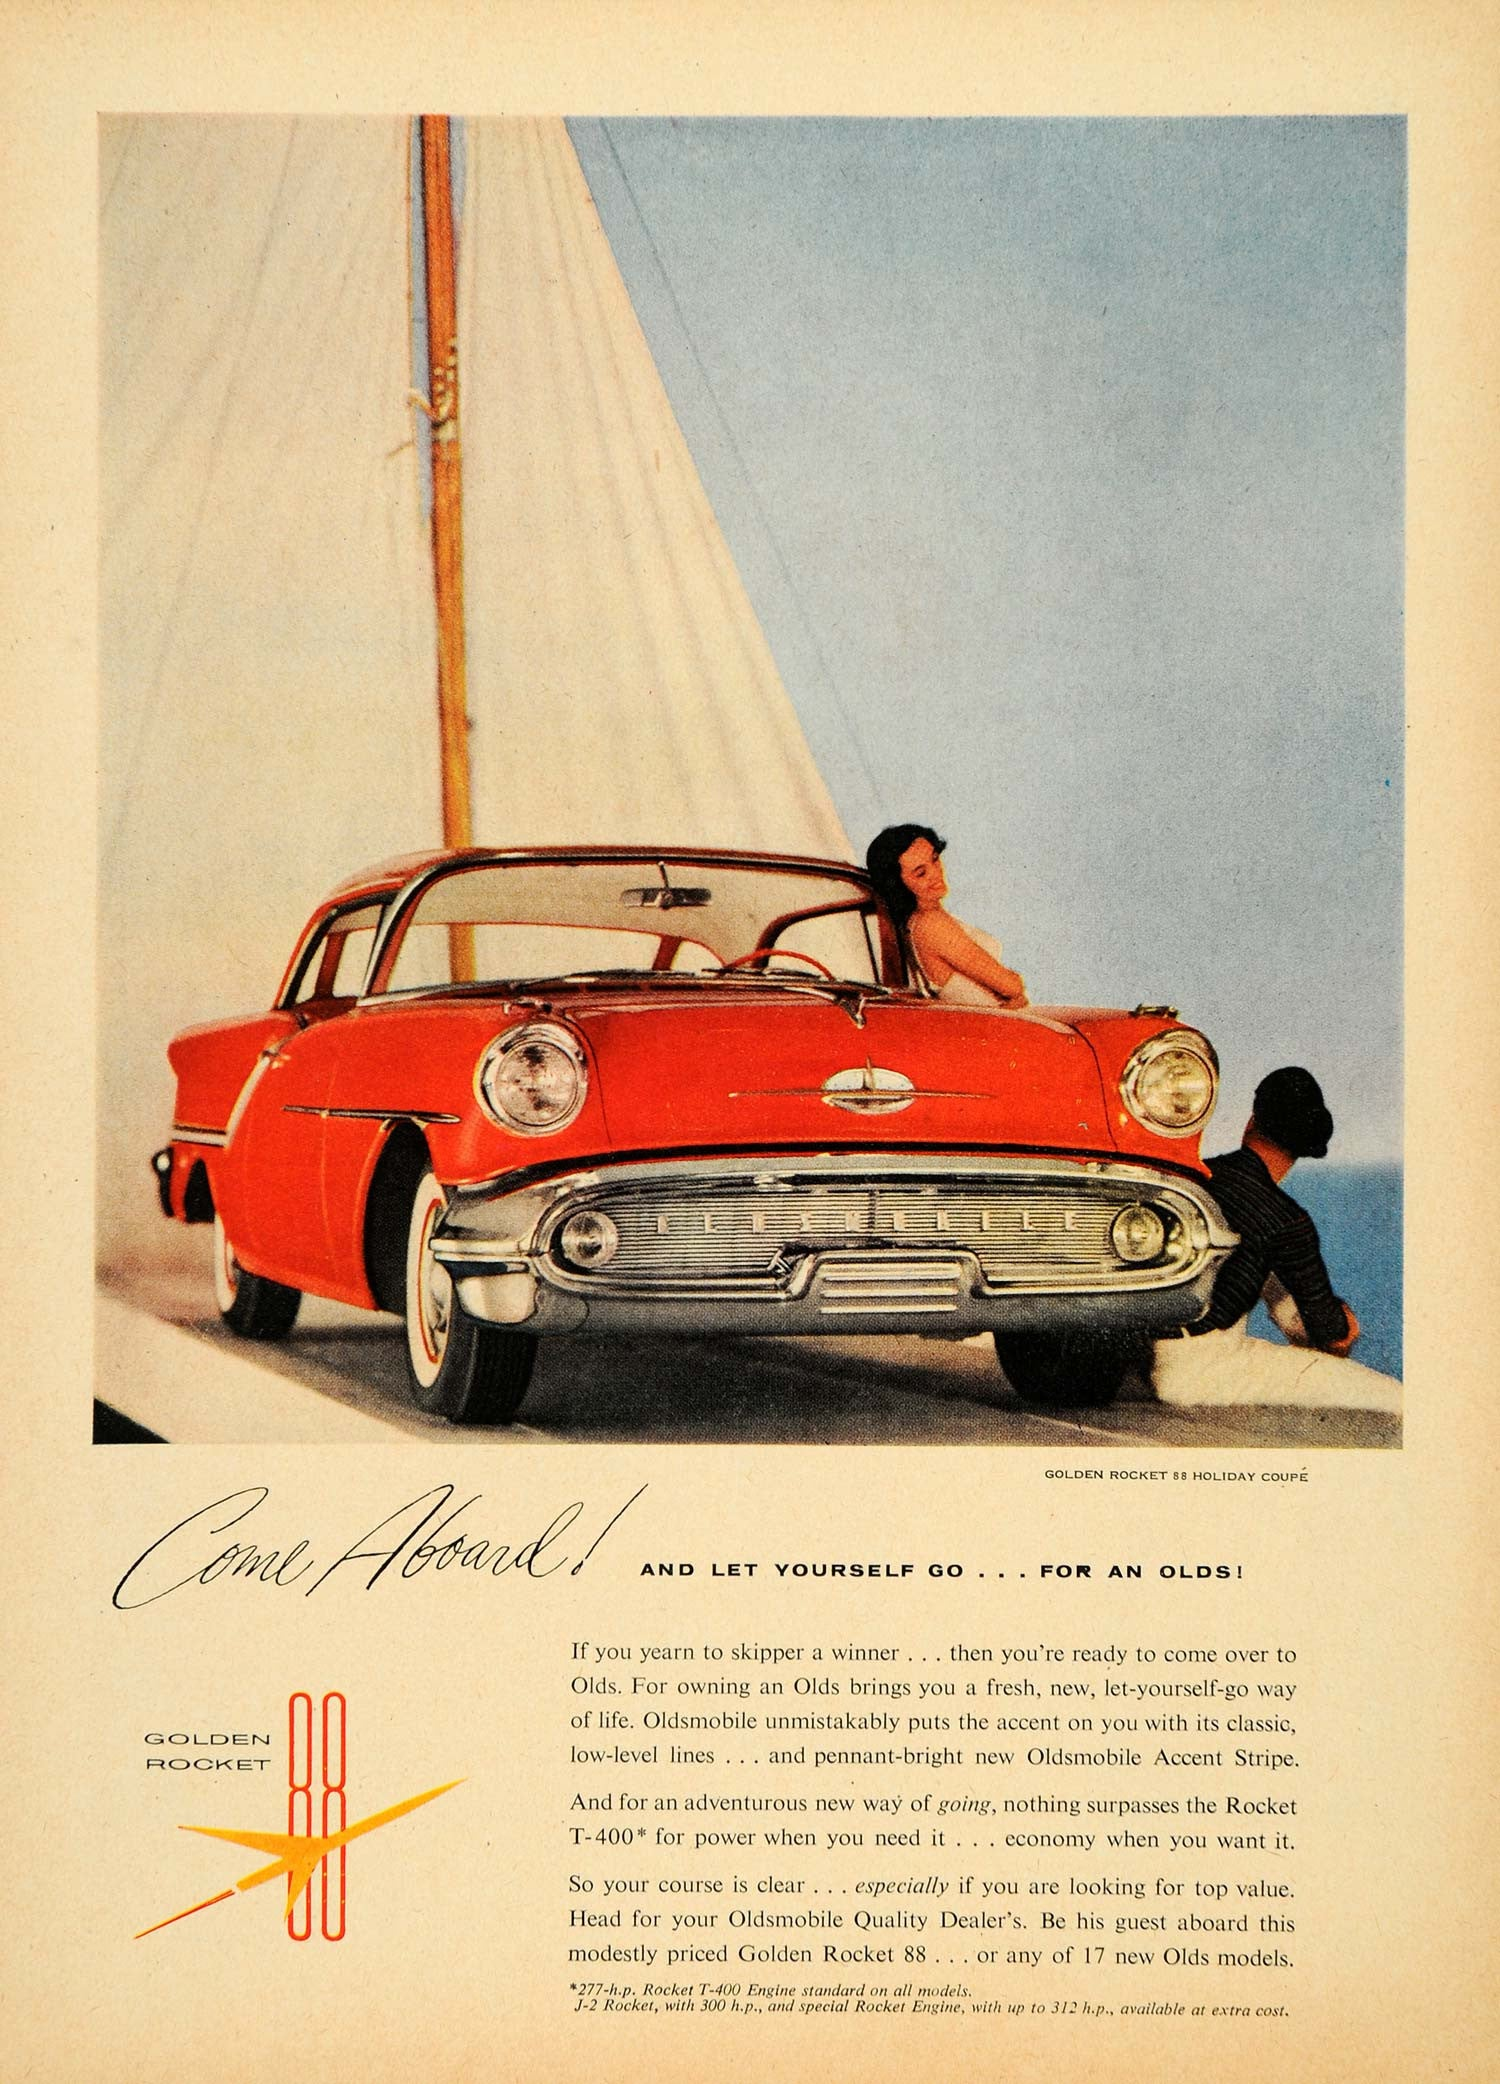 1957 Ad Sailboat Oldsmobile Golden Rocket 88 T-400 - ORIGINAL ADVERTISING TM3